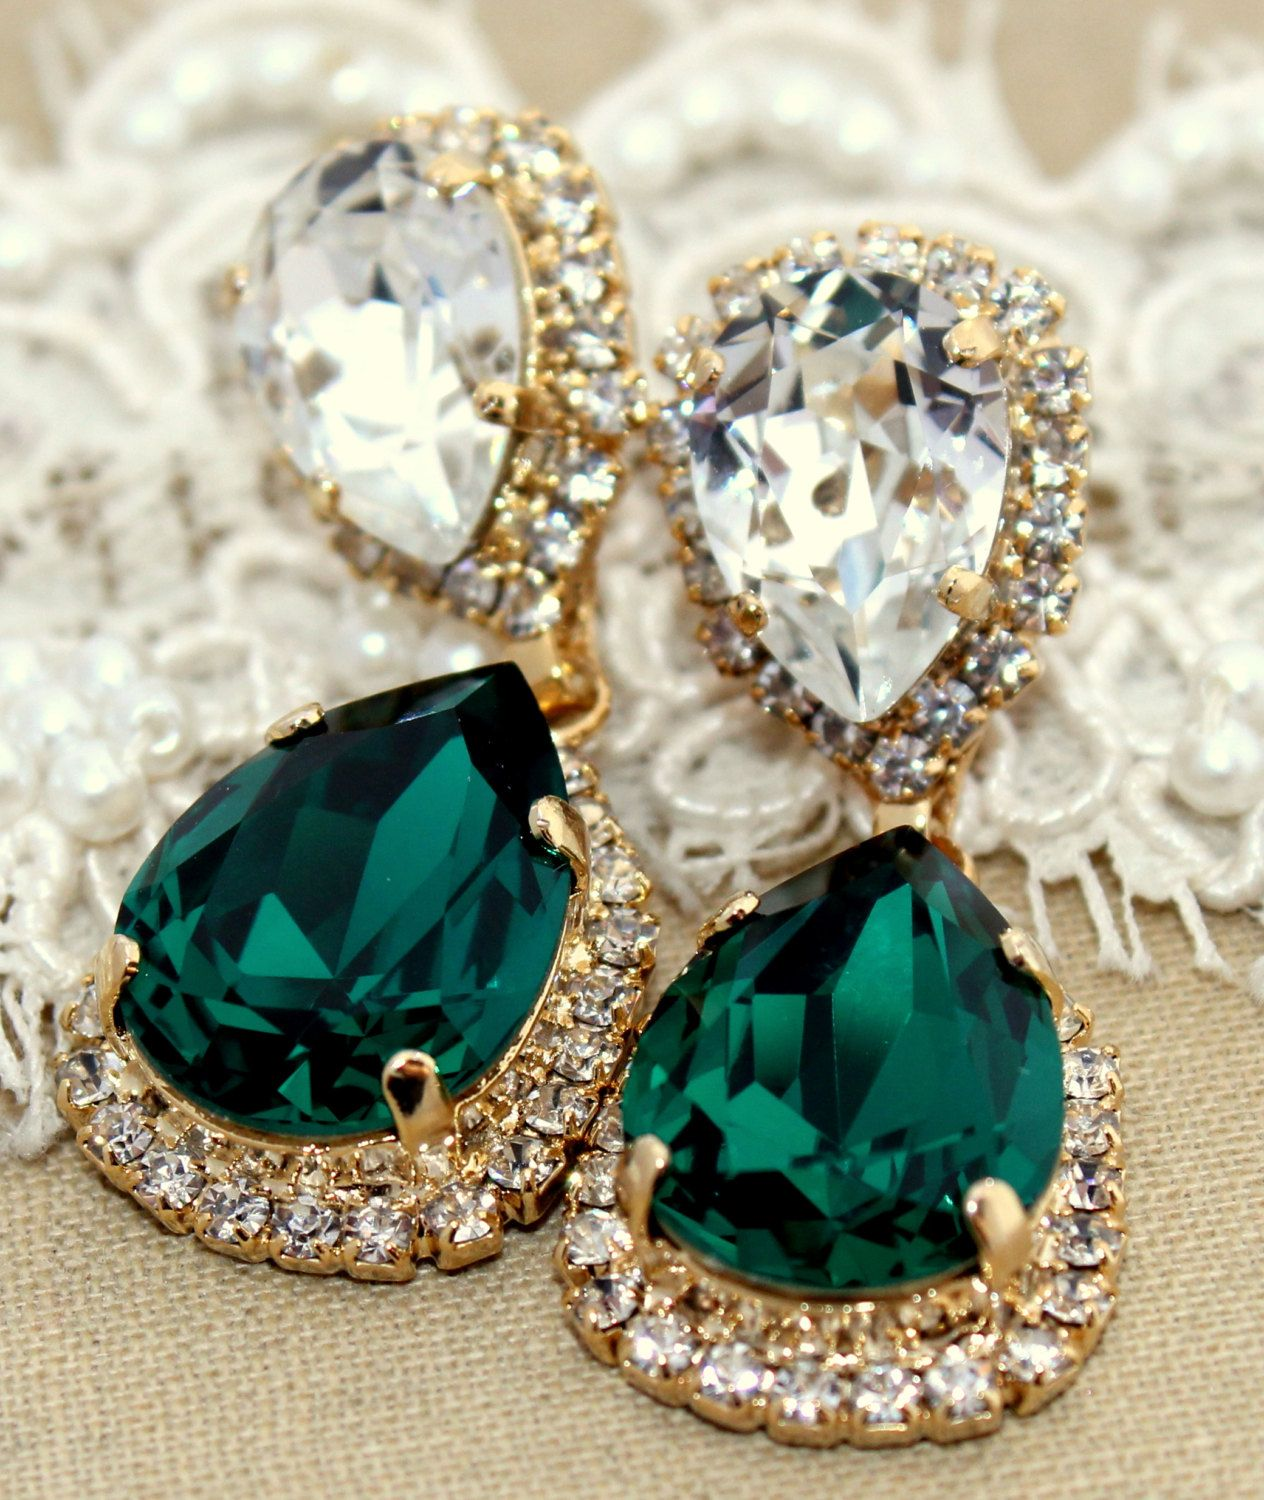 Emerald chandelier earring estate earrings drop emerald earrings emerald chandelier earring 14 k plated gold earrings by iloniti 8500 mozeypictures Image collections